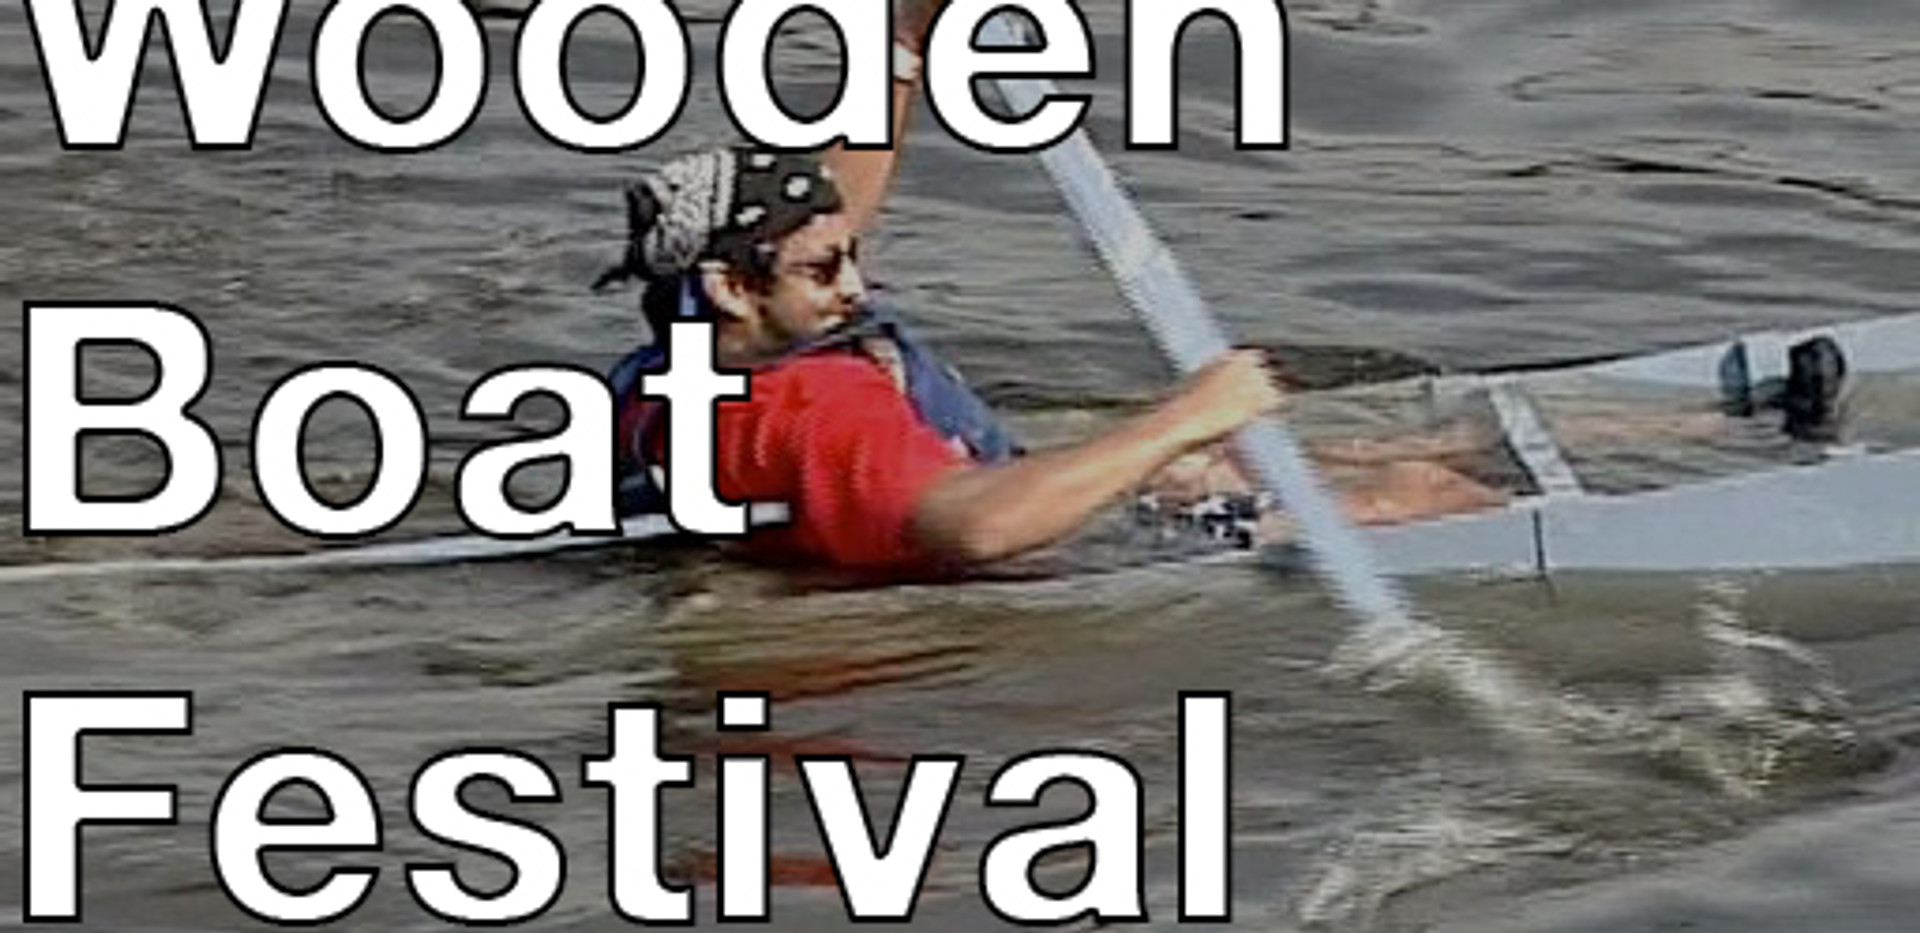 The Wooden Boat Festival